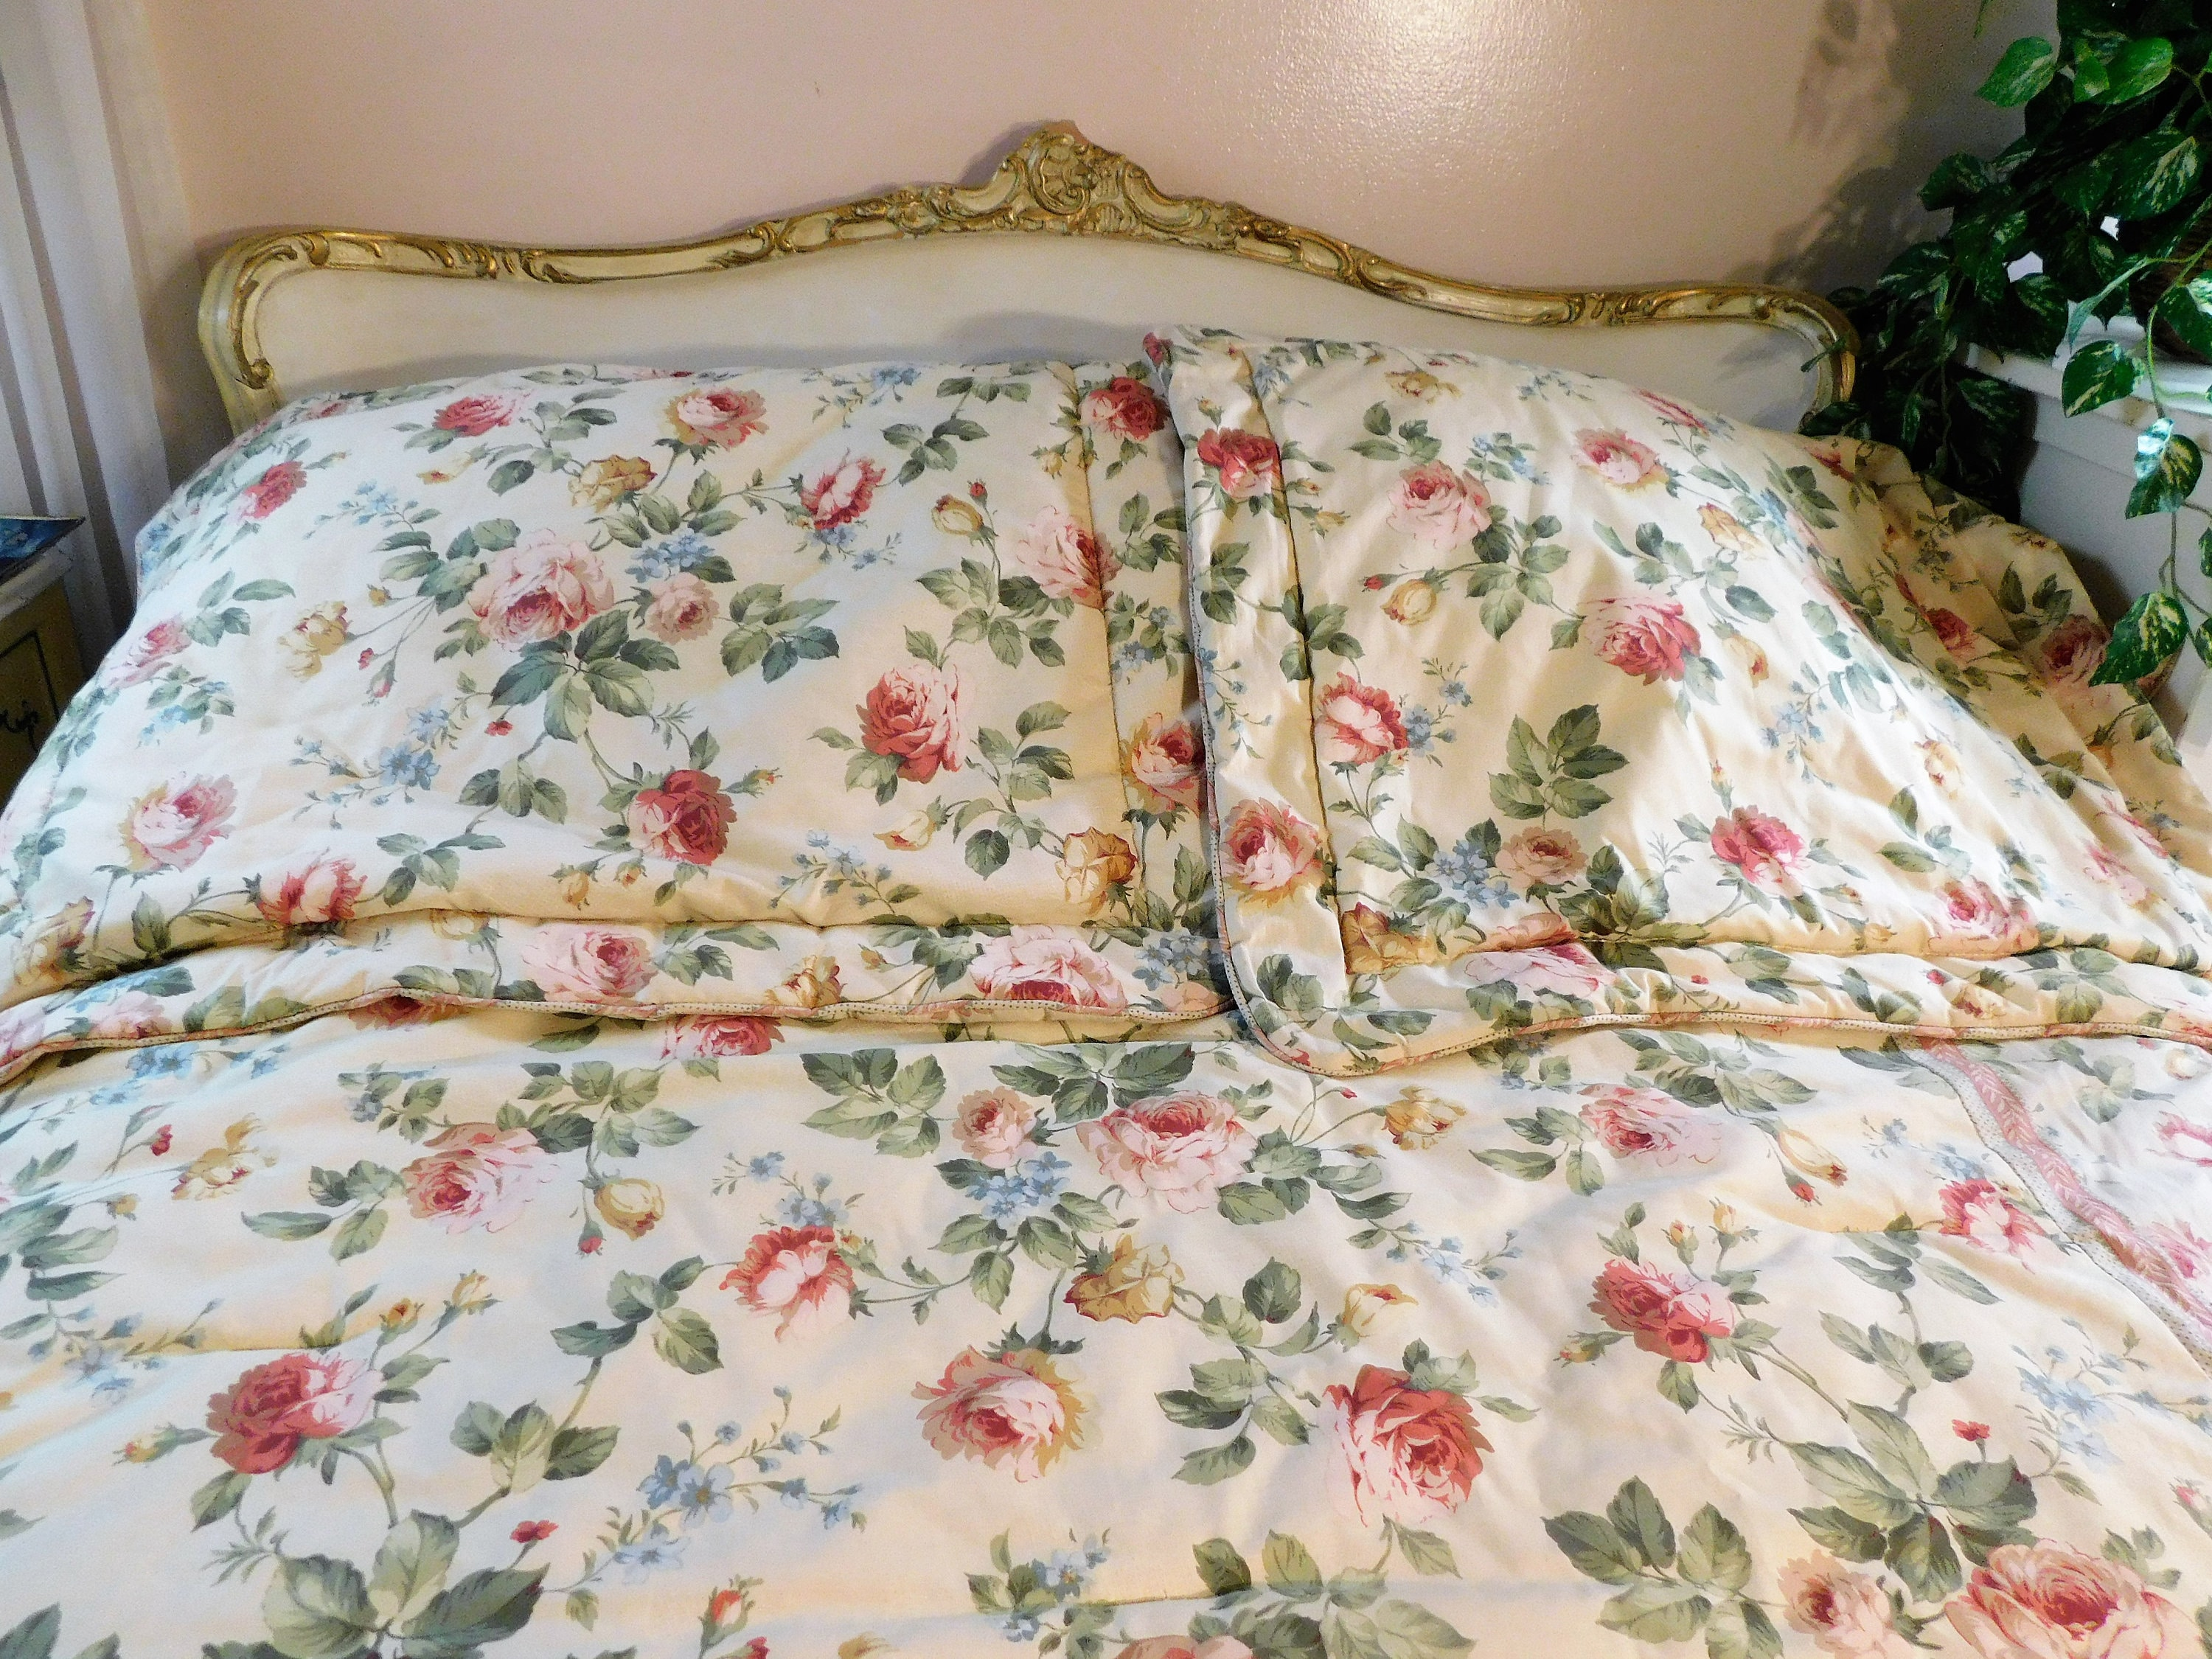 4 Pc Queen Comforter Reversible Floral To Stripes Bed Skirt Etsy